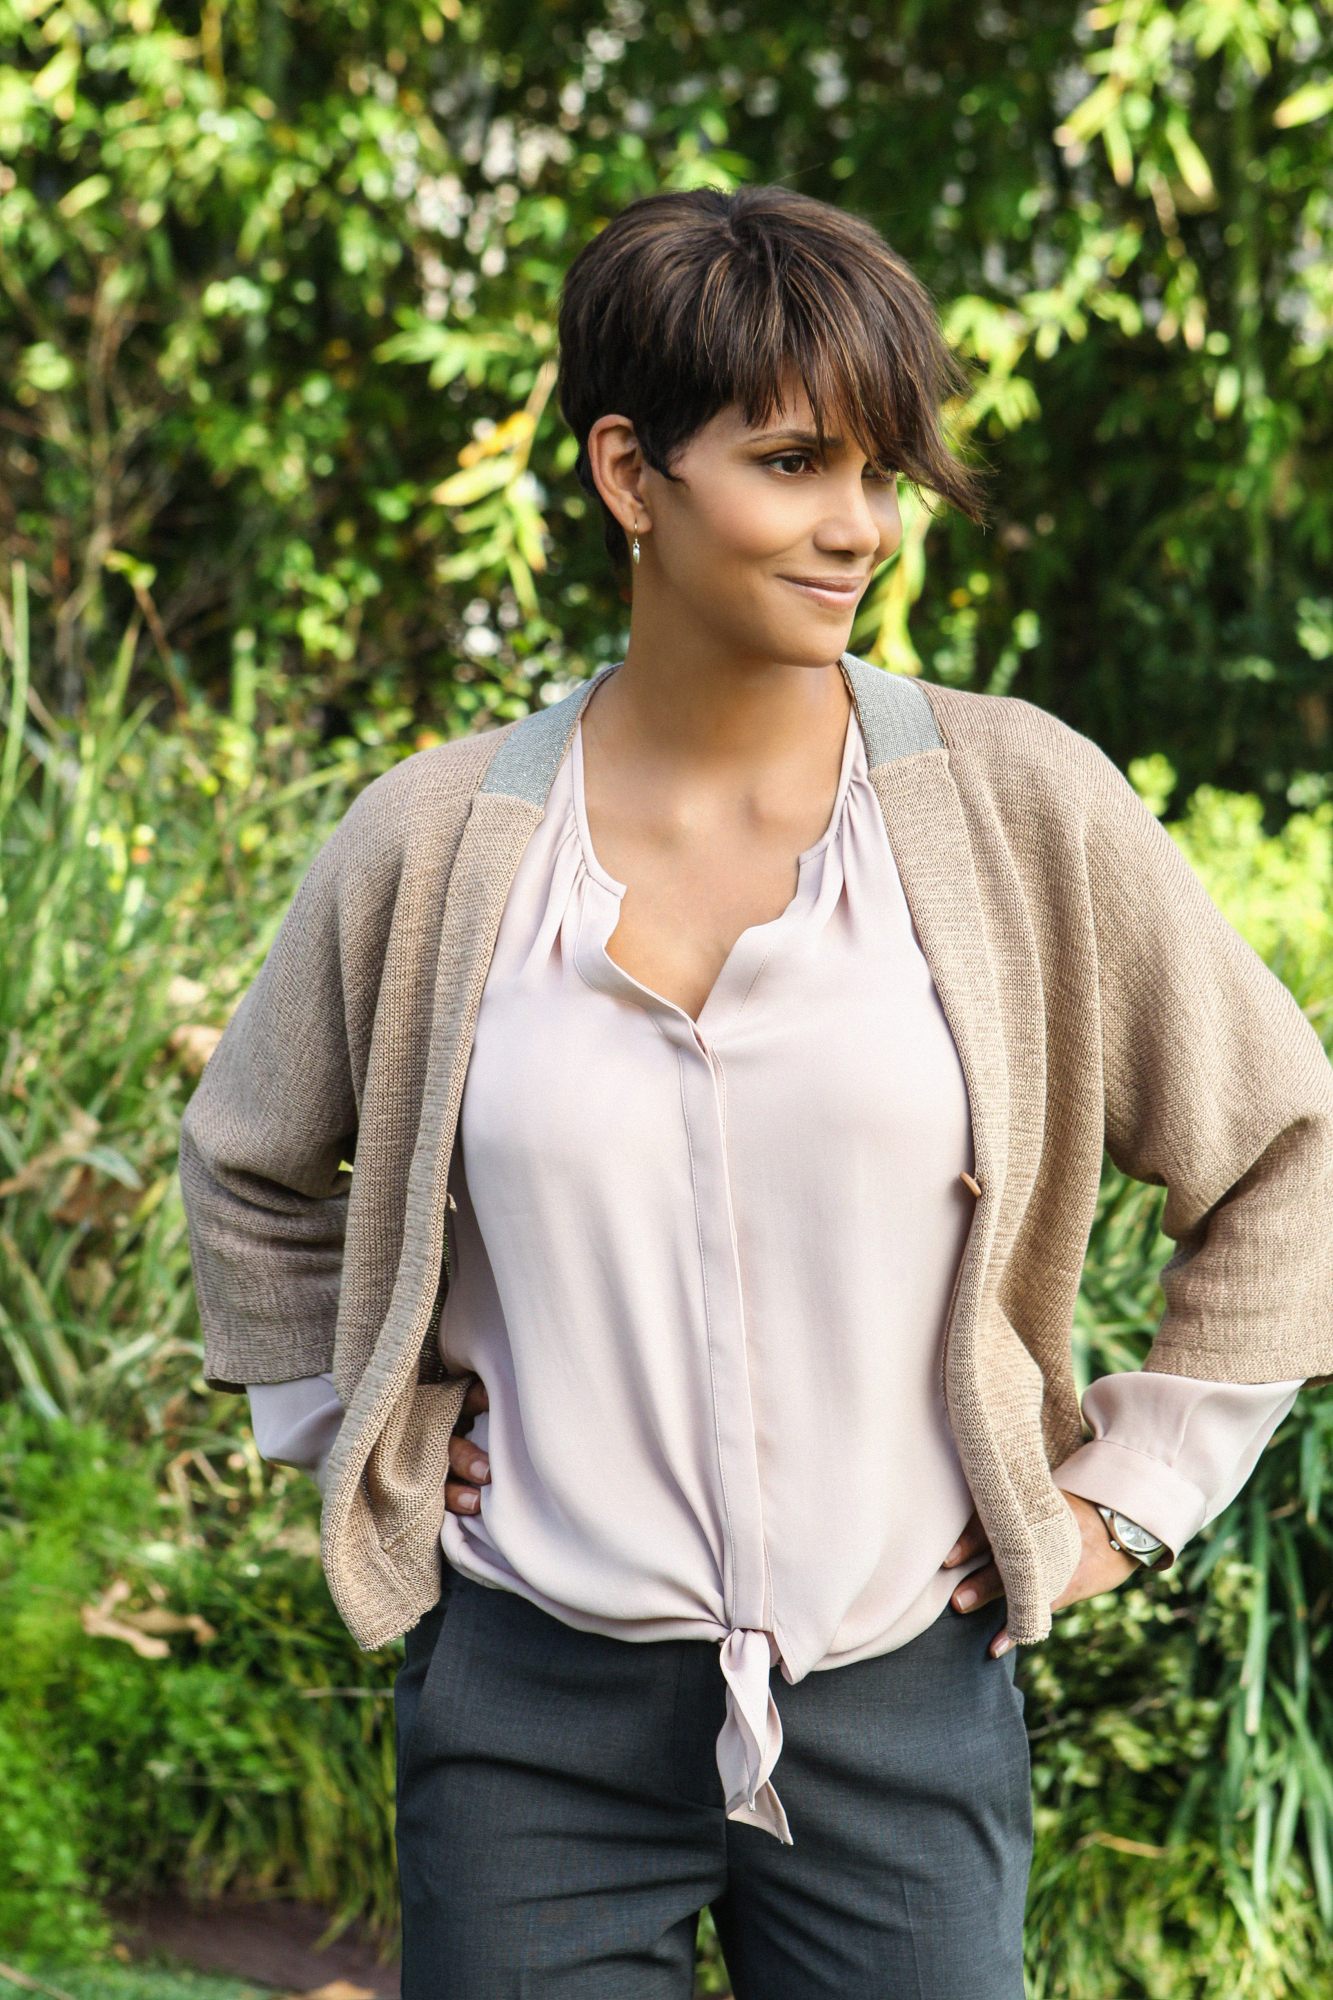 Halle Berry in Extant - First Look